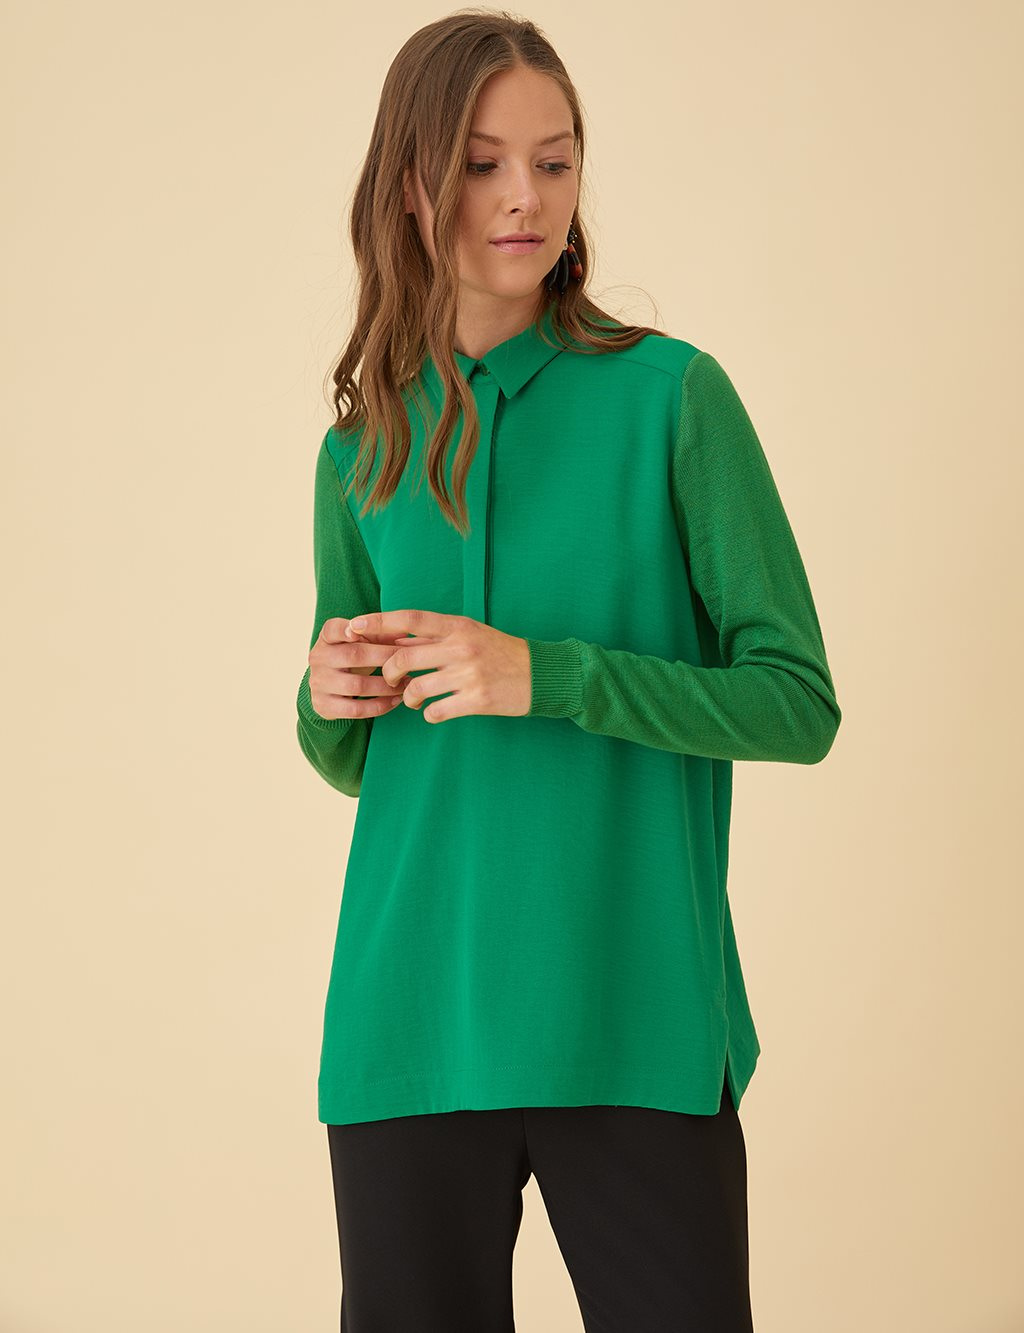 Blouse with Knit Sleeves B9-10110 Green